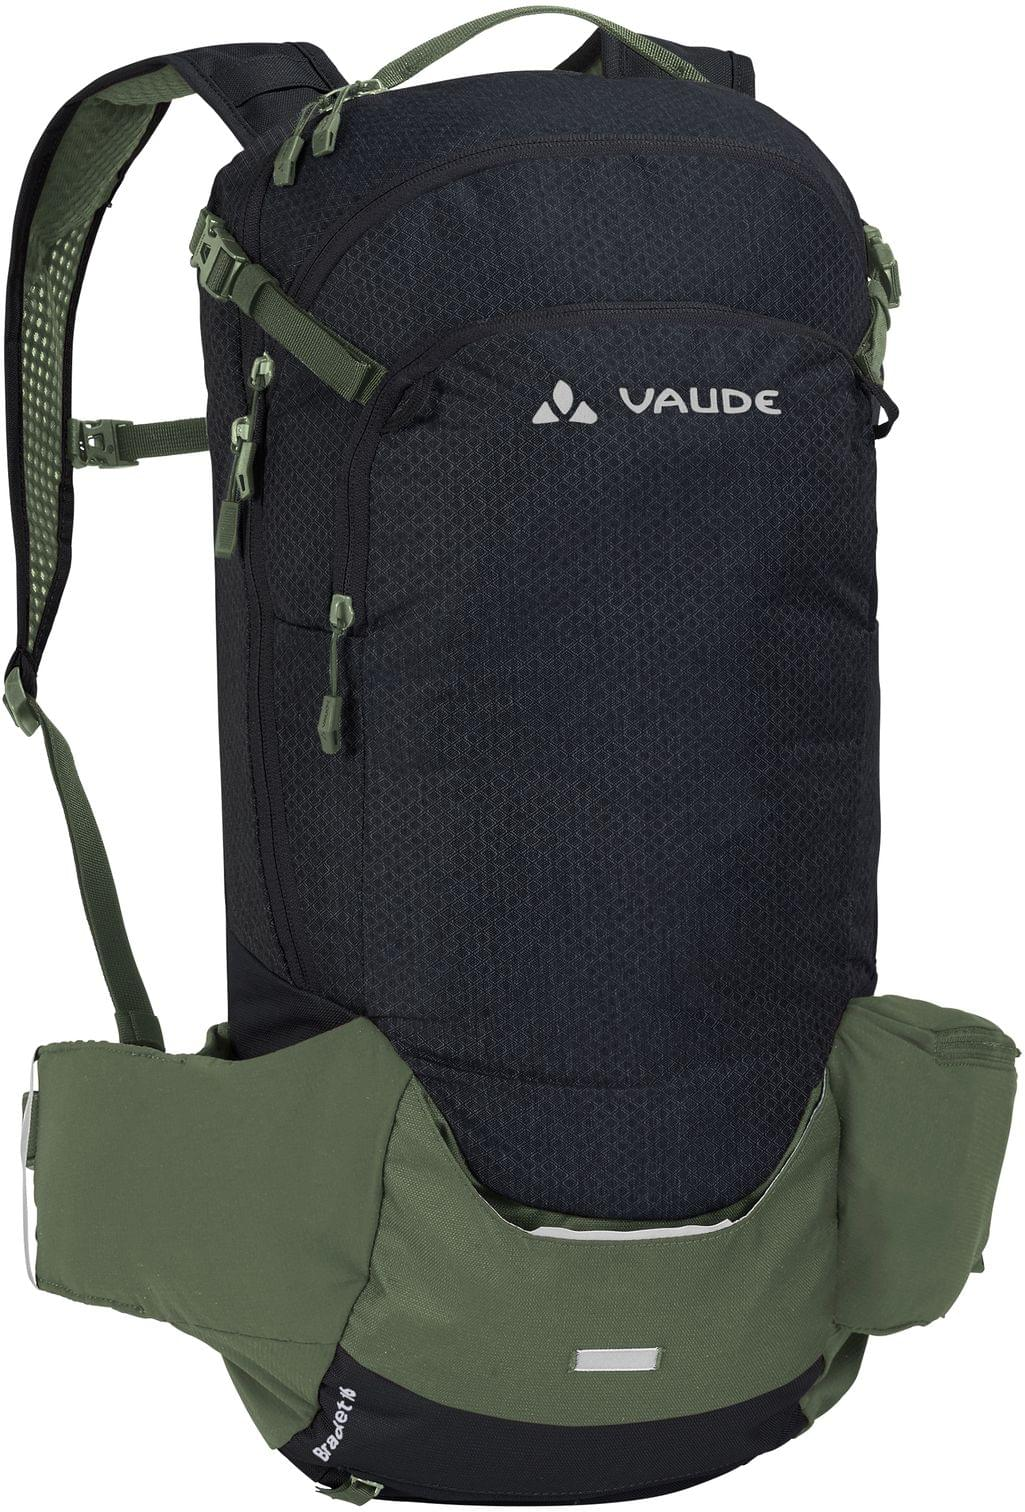 Vaude Bracket 16 - black uni